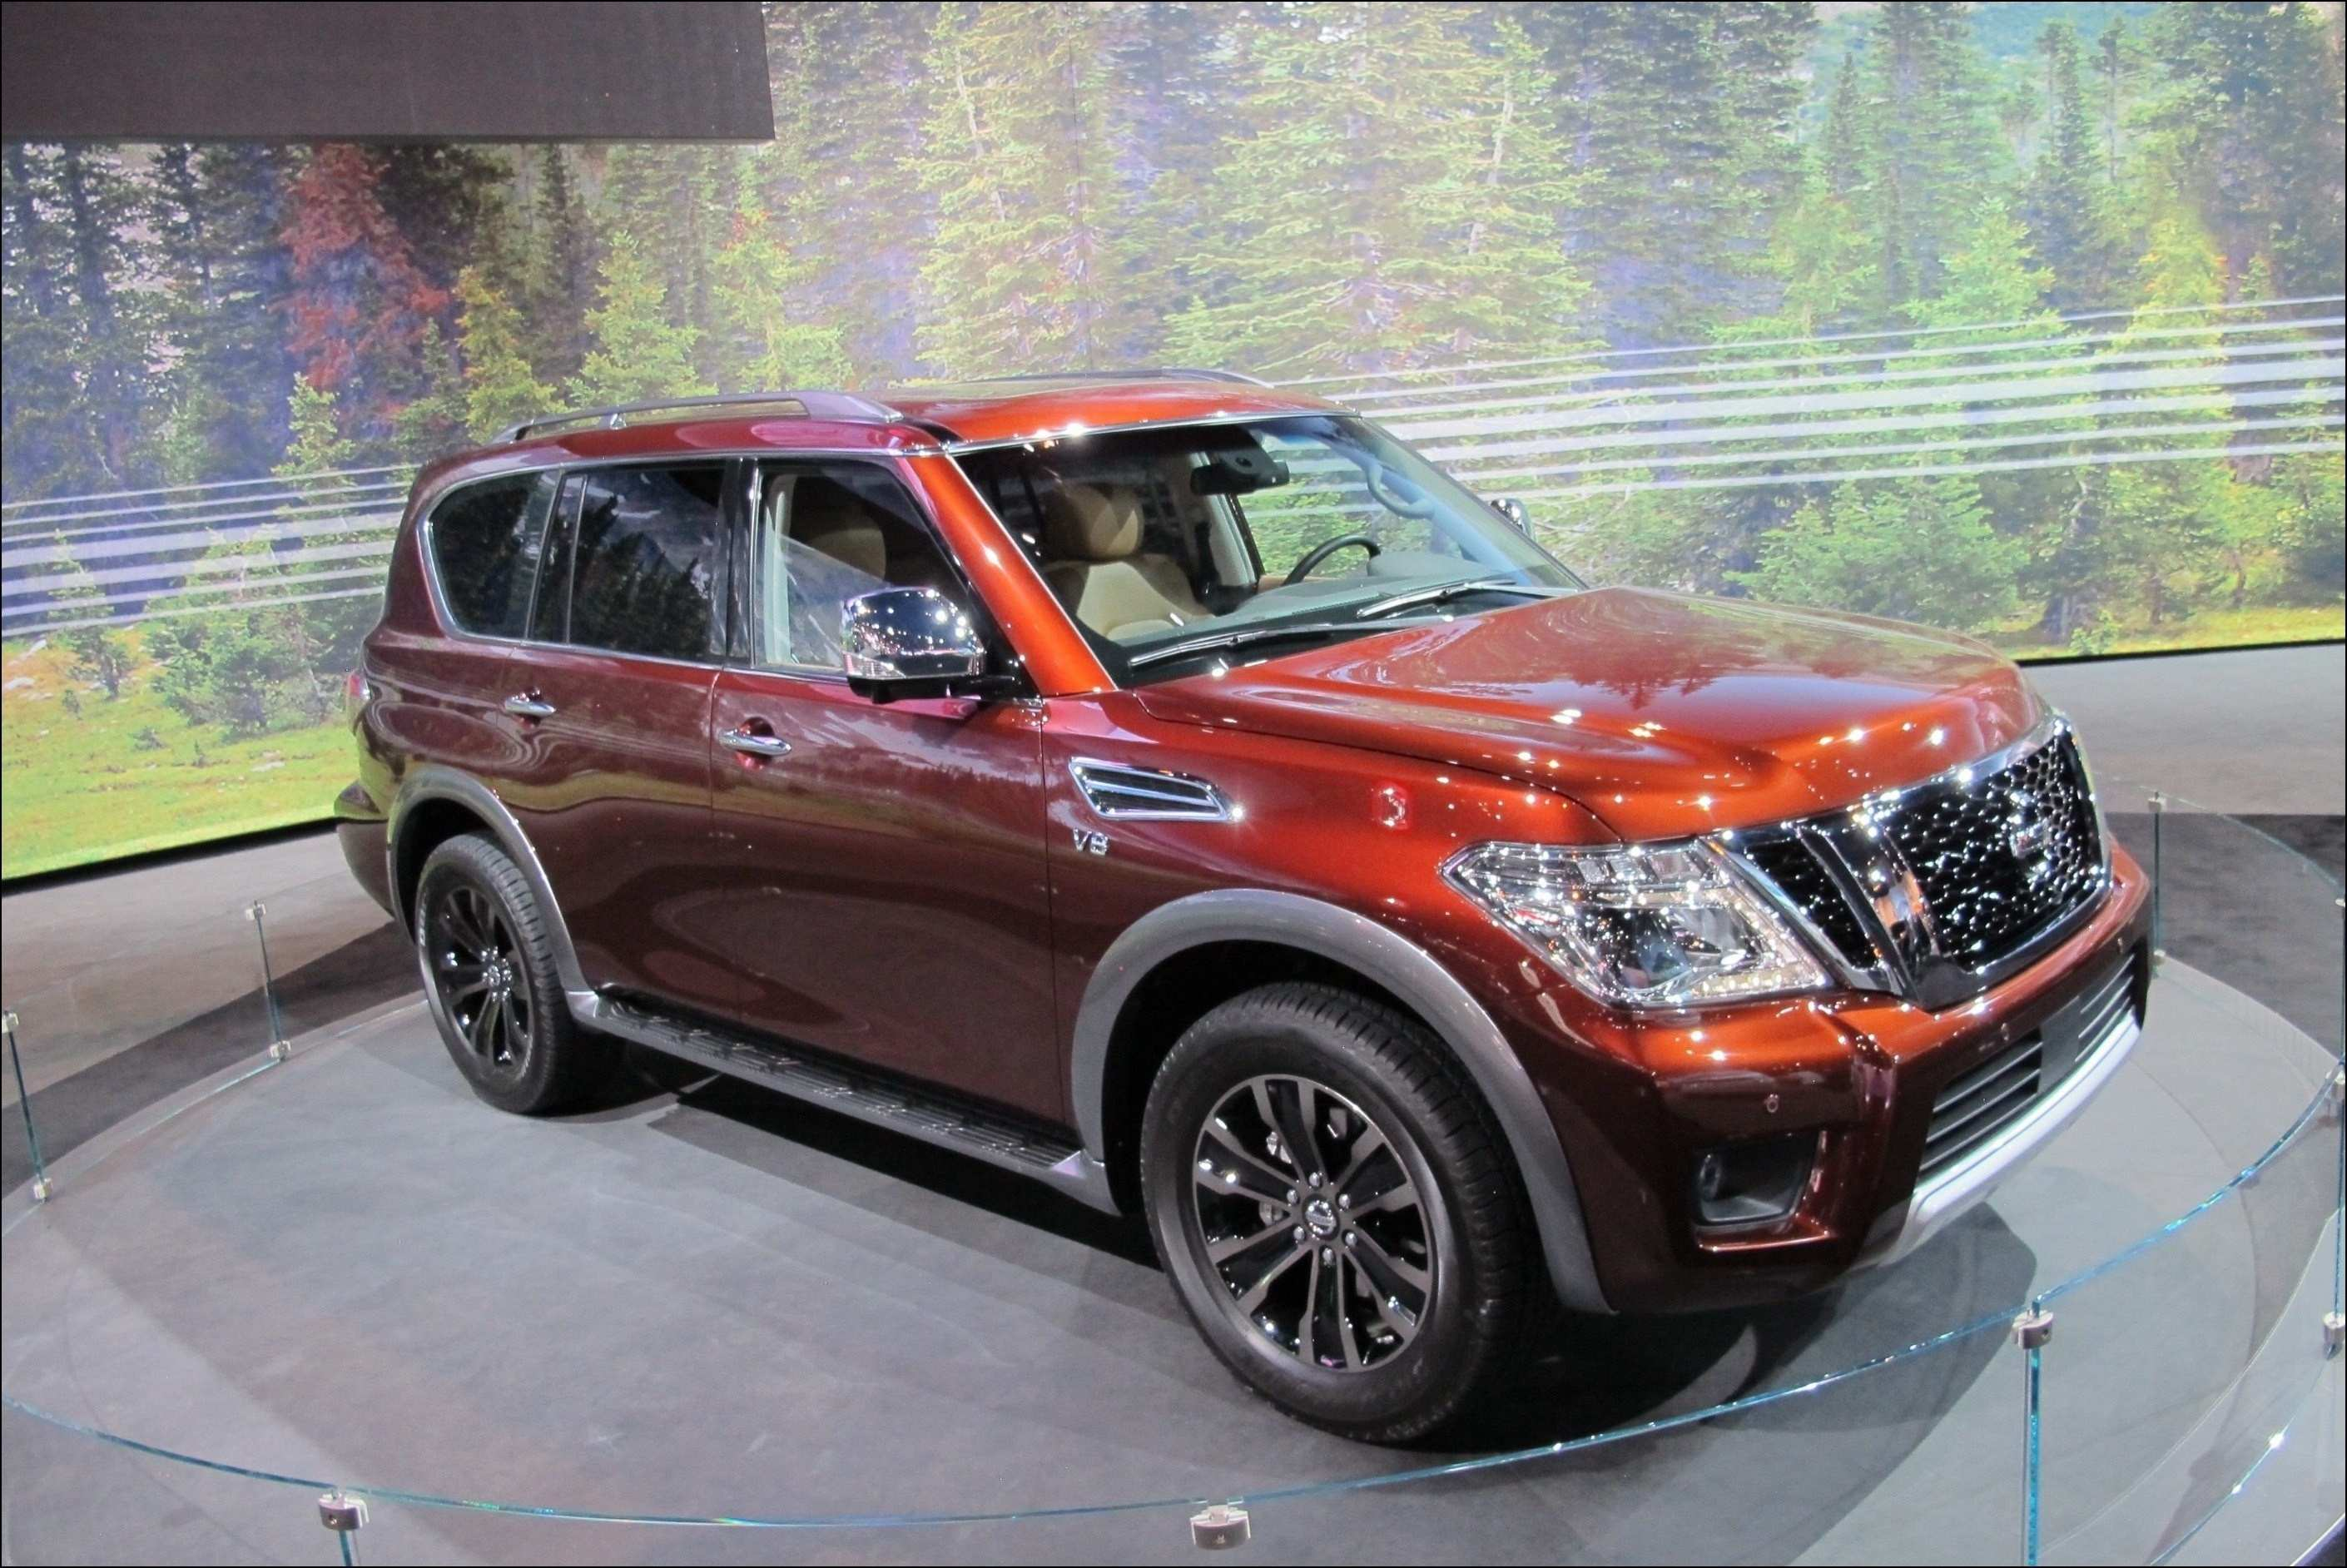 86 All New Nissan Patrol 2020 Release Date